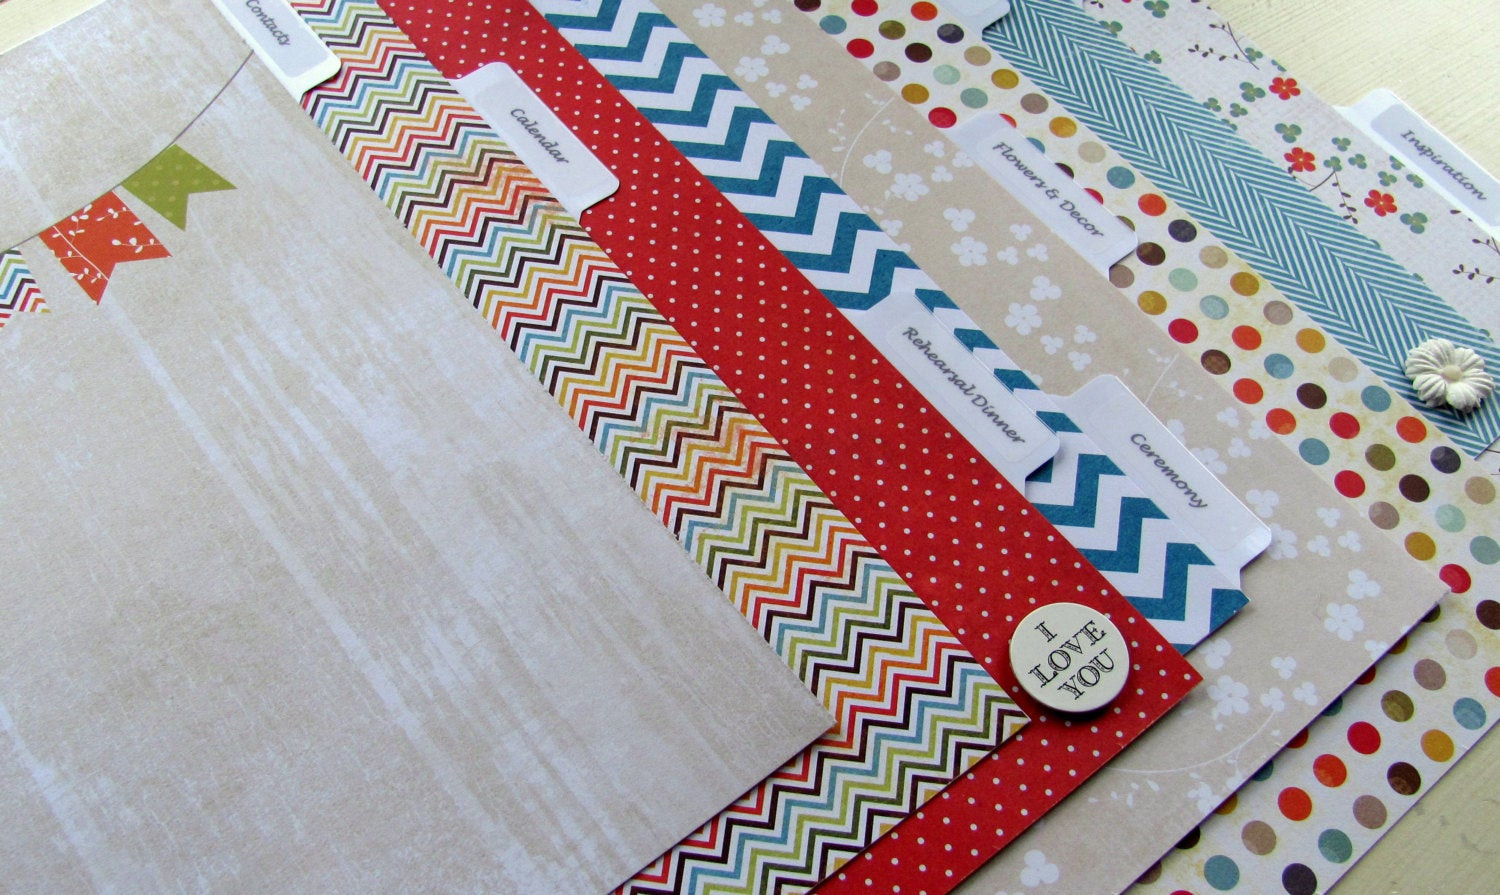 Best ideas about DIY Wedding Binder . Save or Pin Items similar to DIY 15 Wedding Planner Binder Dividers Now.